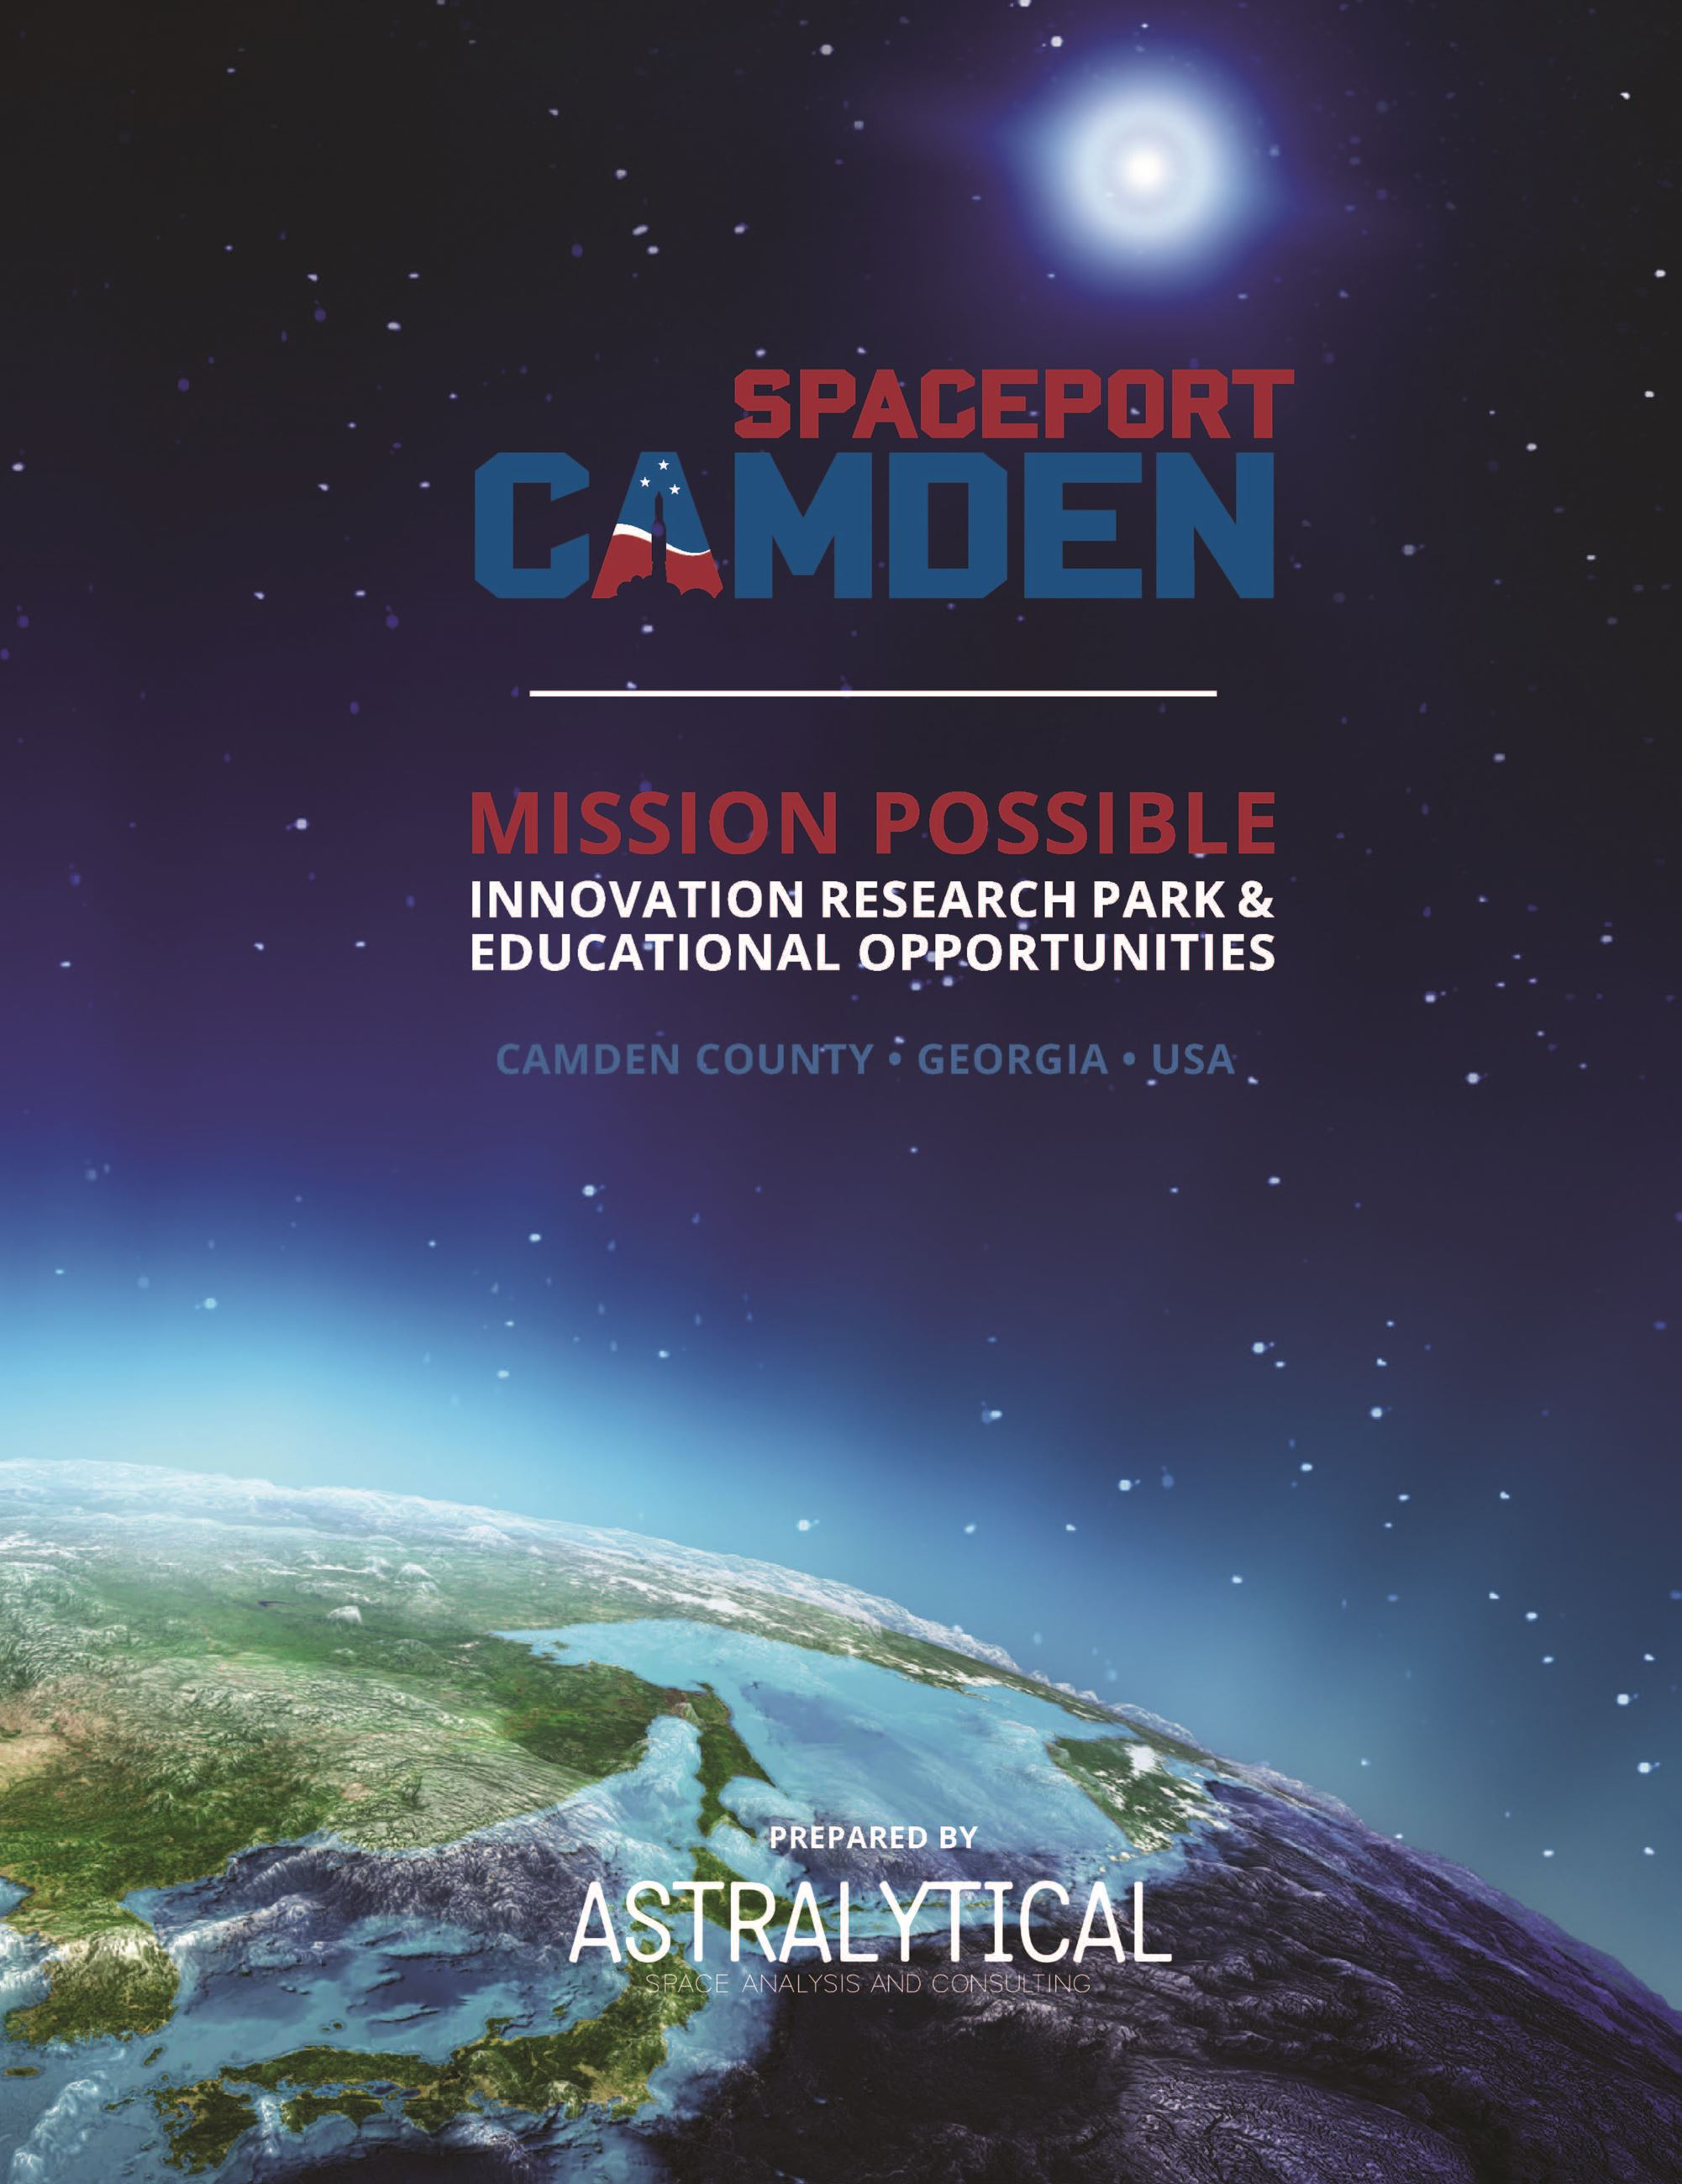 Spaceport Camden - Mission Possible